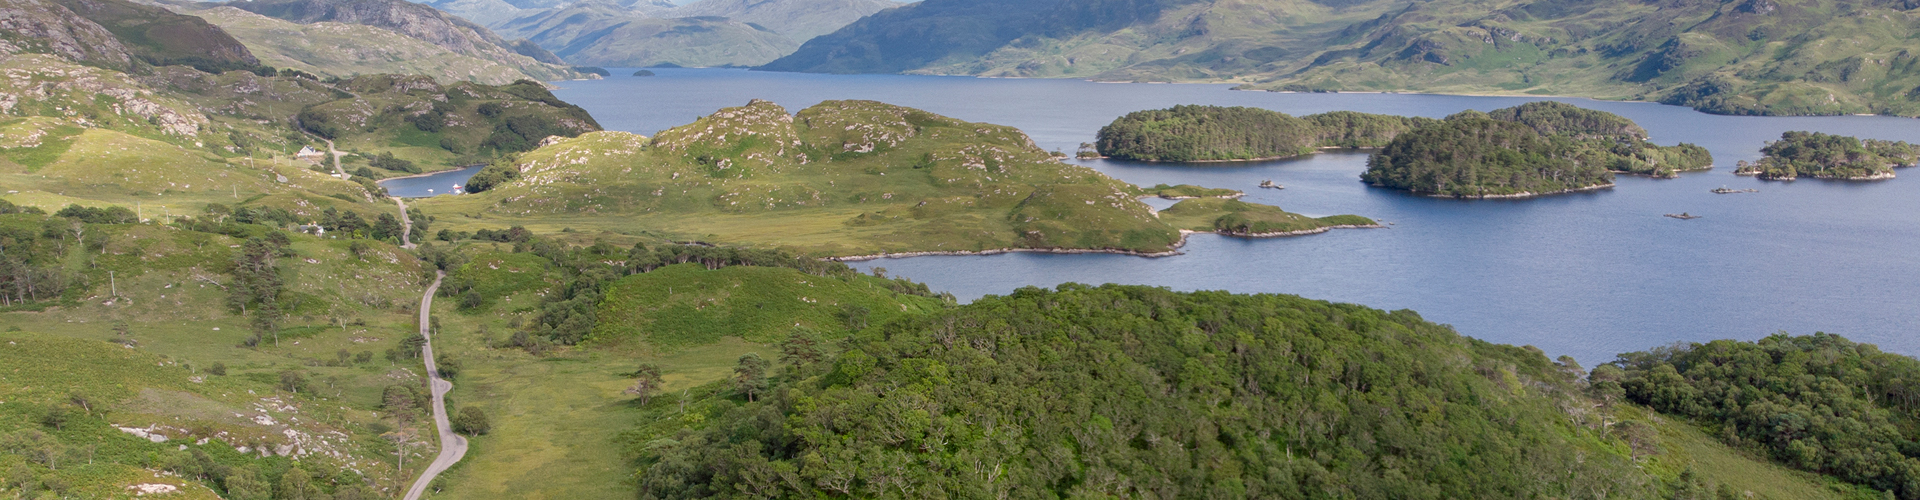 Loch Morar shot from air looking west